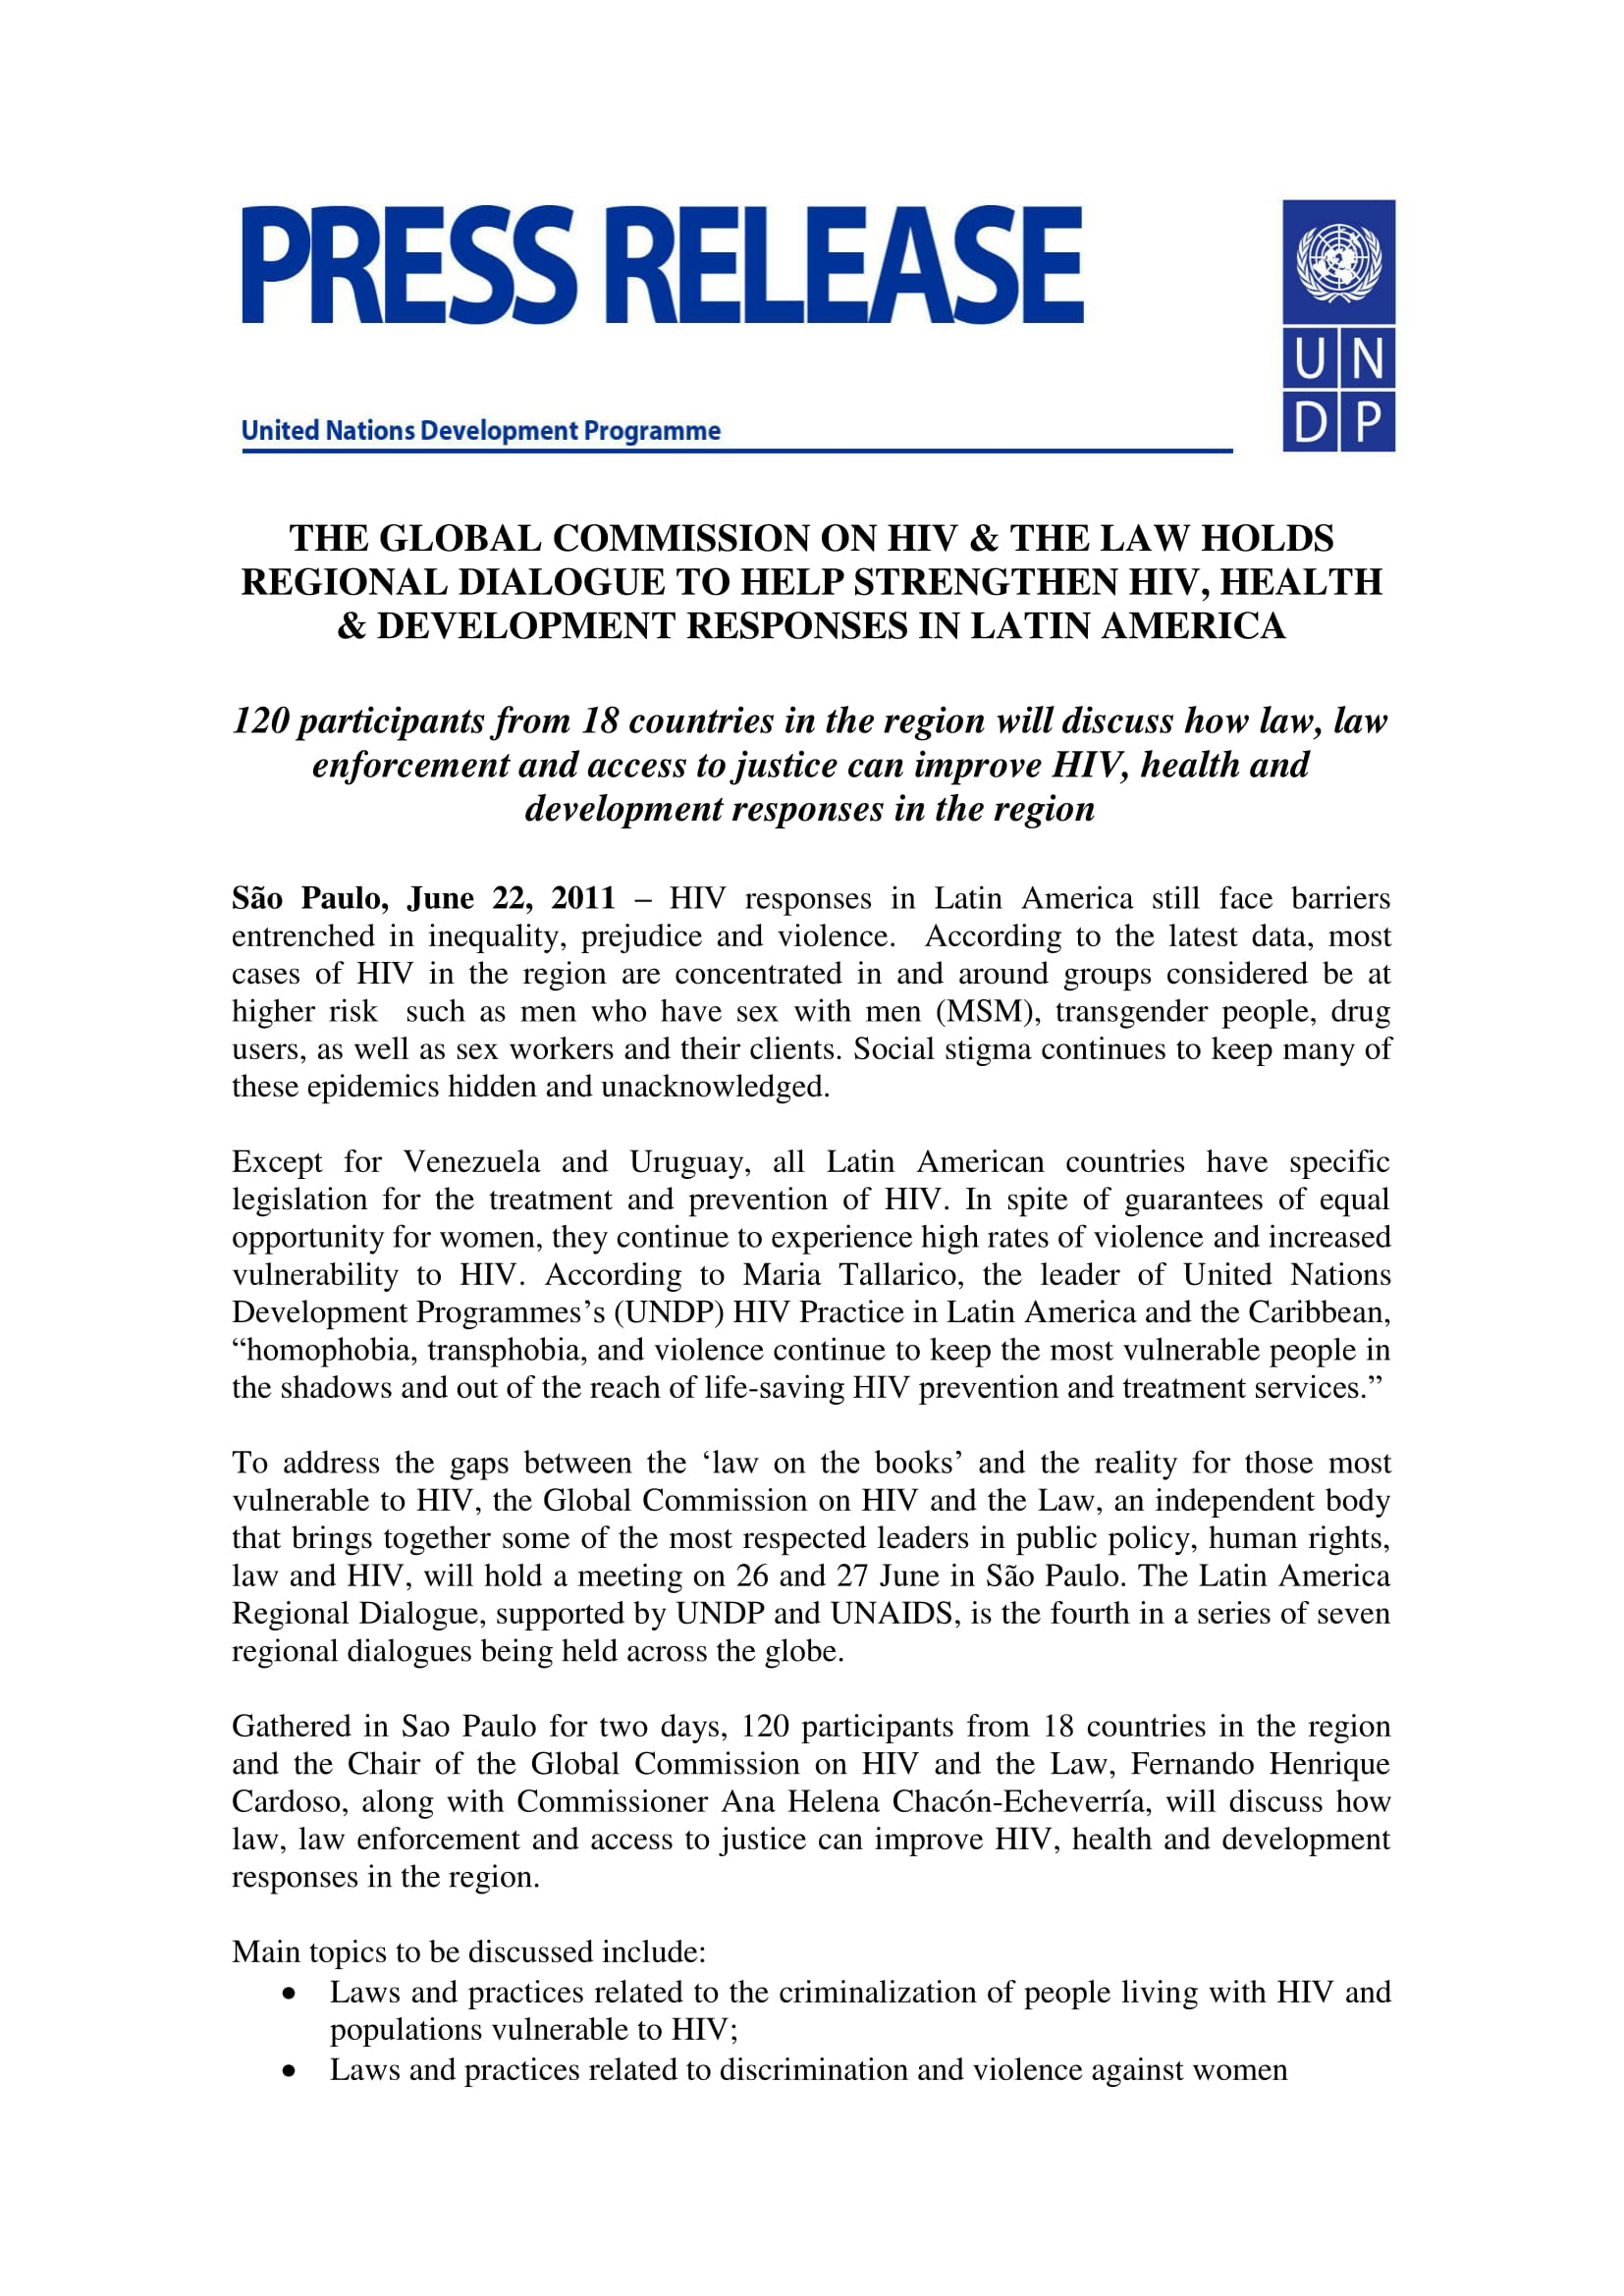 Press Release: The Global Commission on HIV & The Law Holds Regional Dialogue to Help Strengthen HIV, Health & Development Responses in Latin America